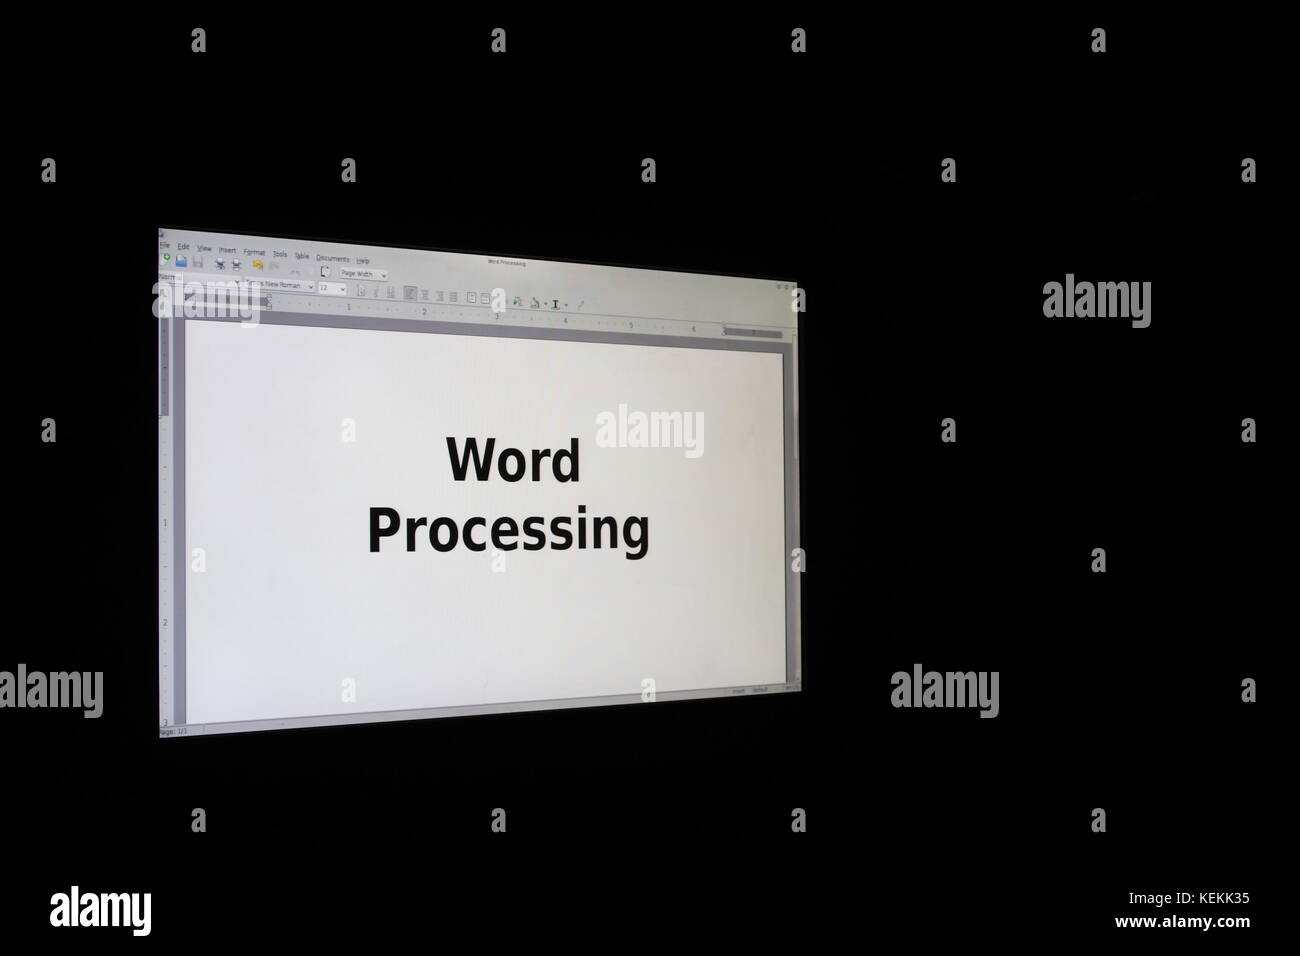 Computer Screen displaying Word Processing - Stock Image